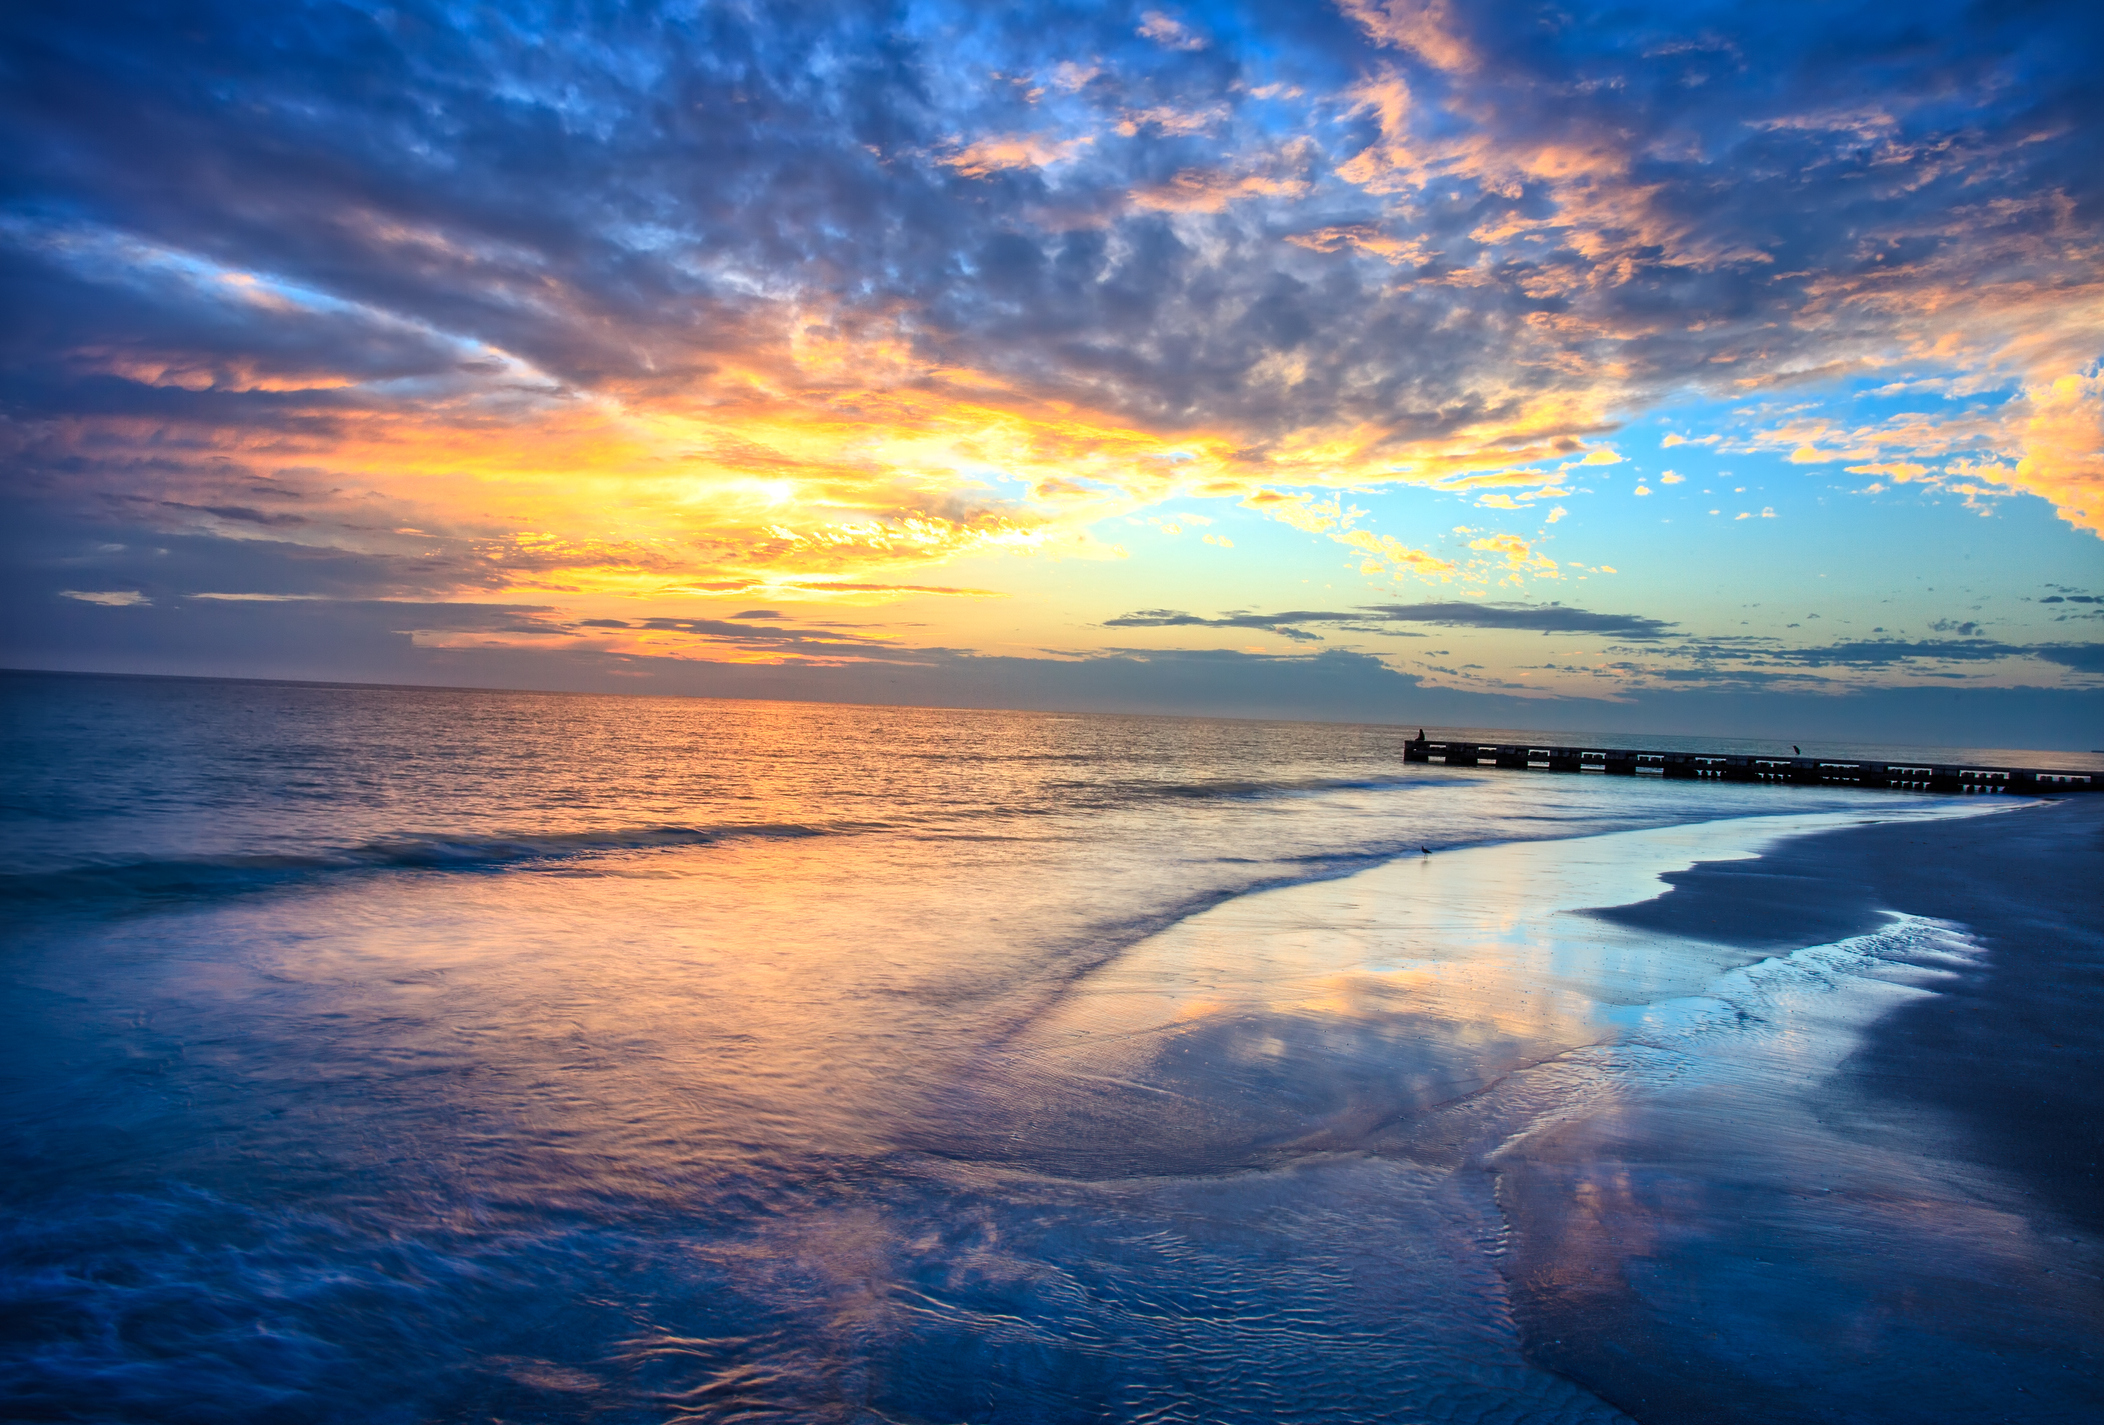 Another beautiful sunset from the west coast of Florida. Longboat Key offers a nightly visual treat of a beautiful sunset. Representing best place to retire in Florida